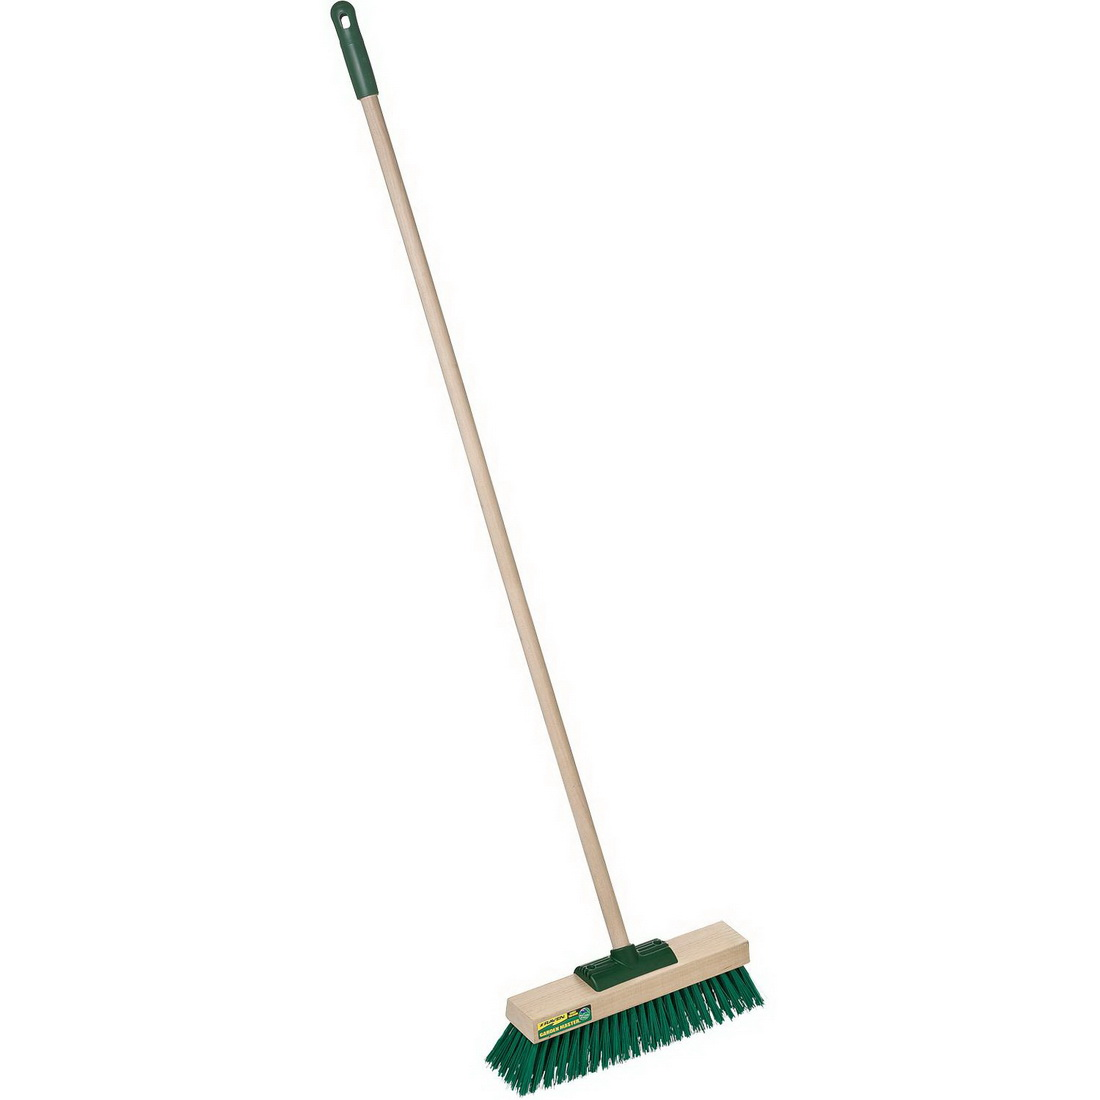 Raven 1350x25mm Handle Garden Master Broom